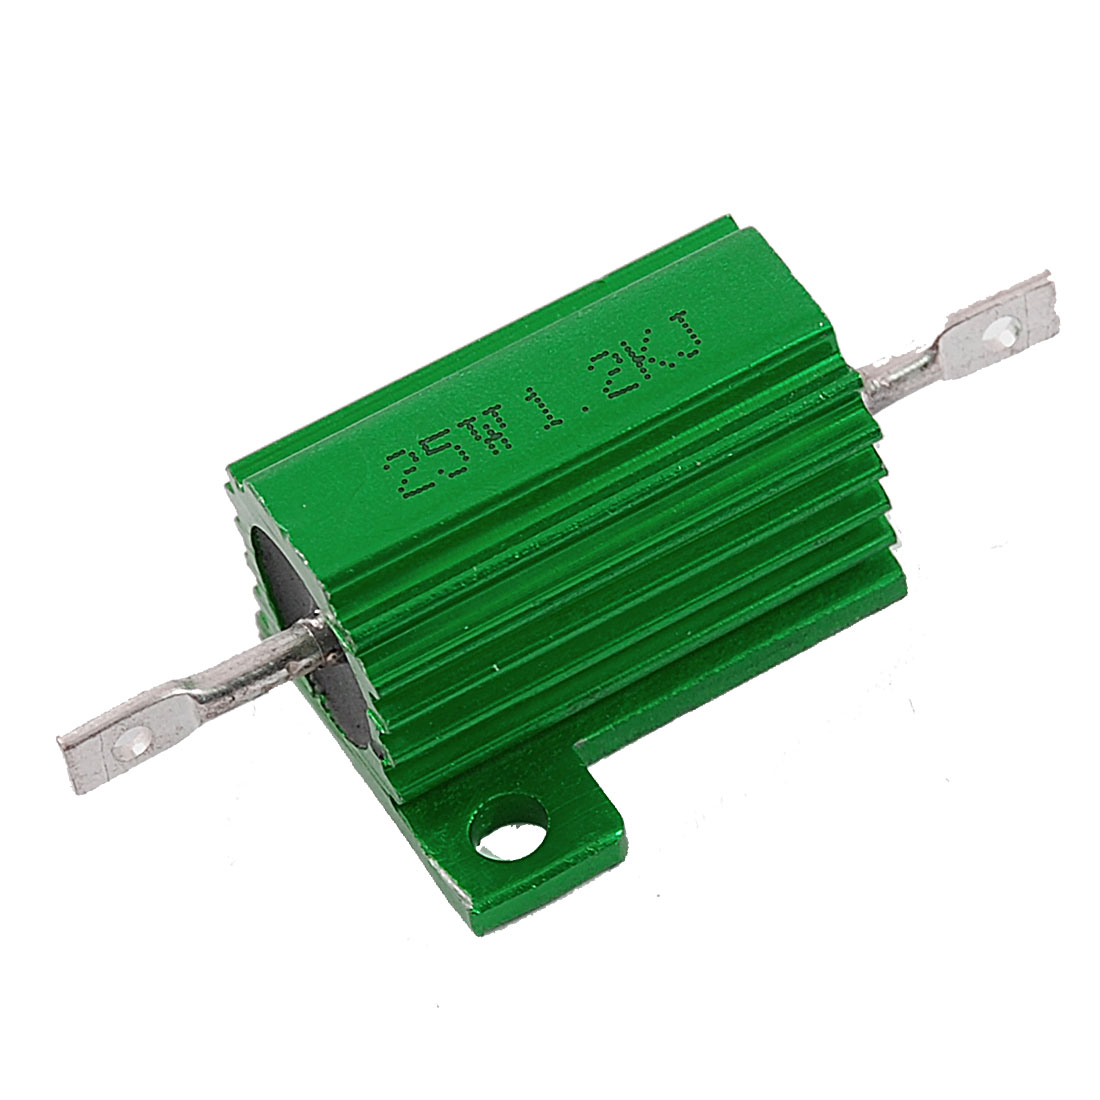 Chasis Mounted 25W 1.2K Ohm 5% Aluminum Case Wirewound Resistor